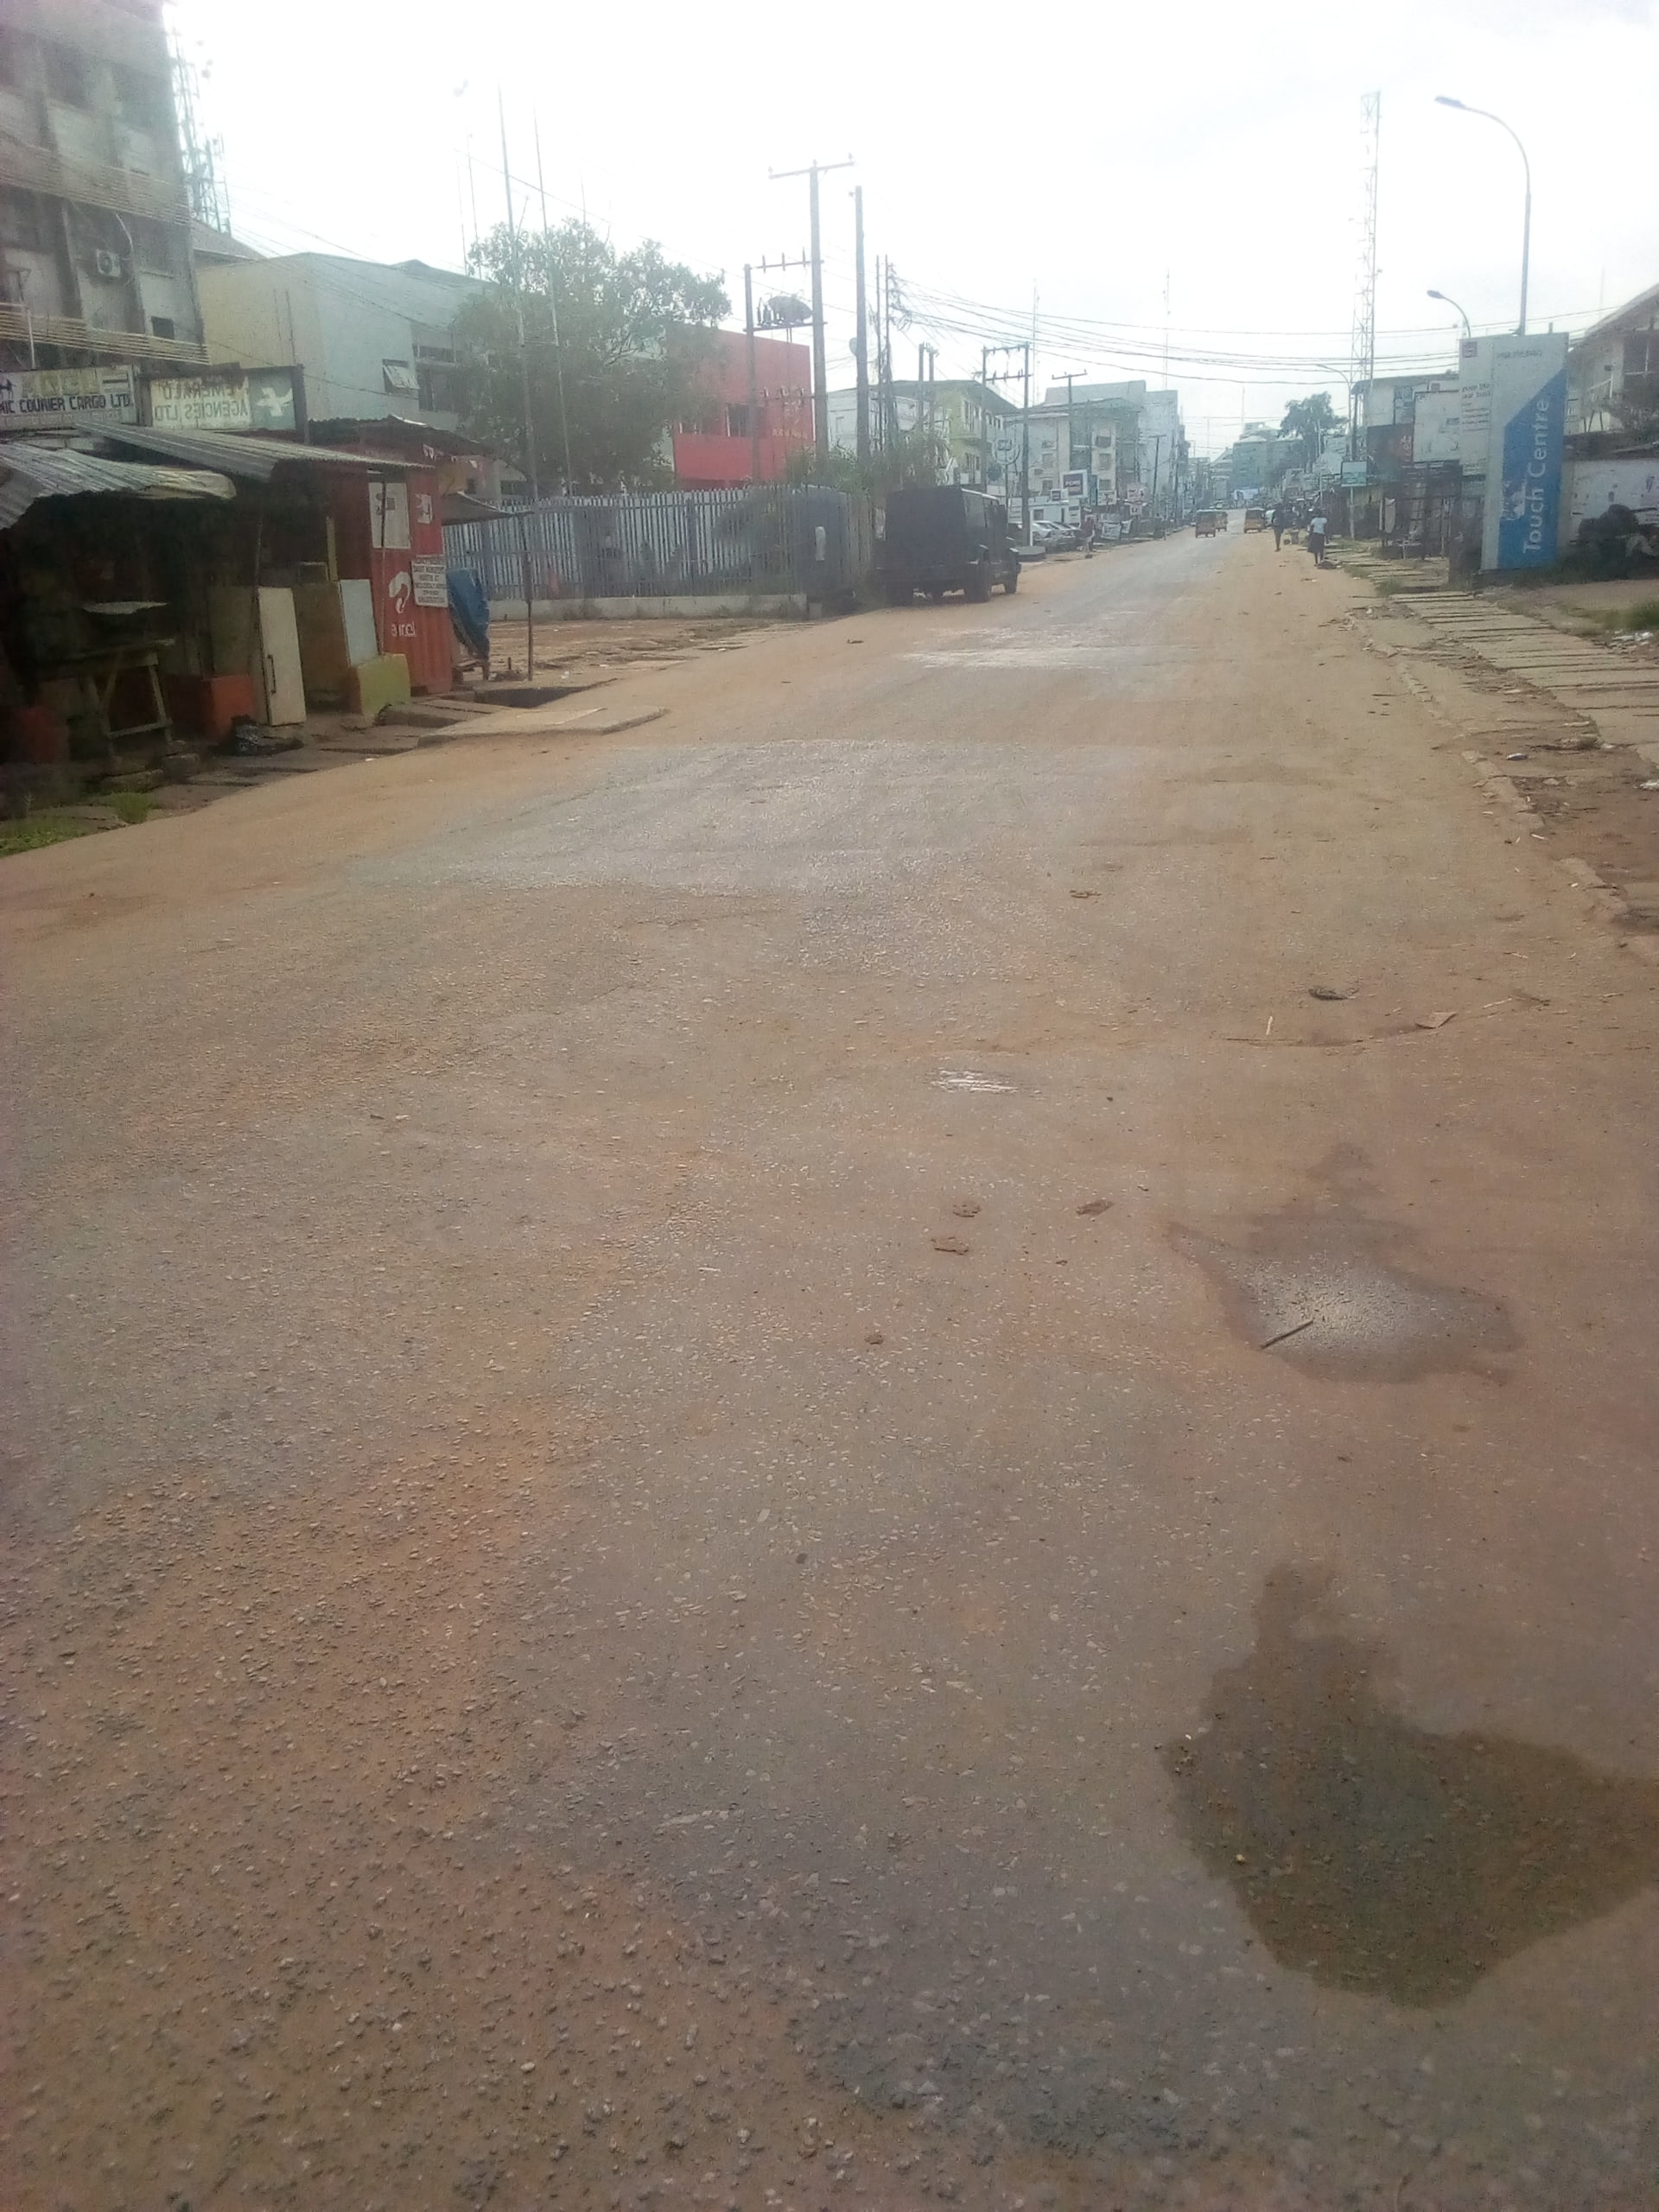 Onitsha main market - Biafra: See What Onitsha, Other Cities Look Like As IPOB Observes Sit-At-Home (Photos)